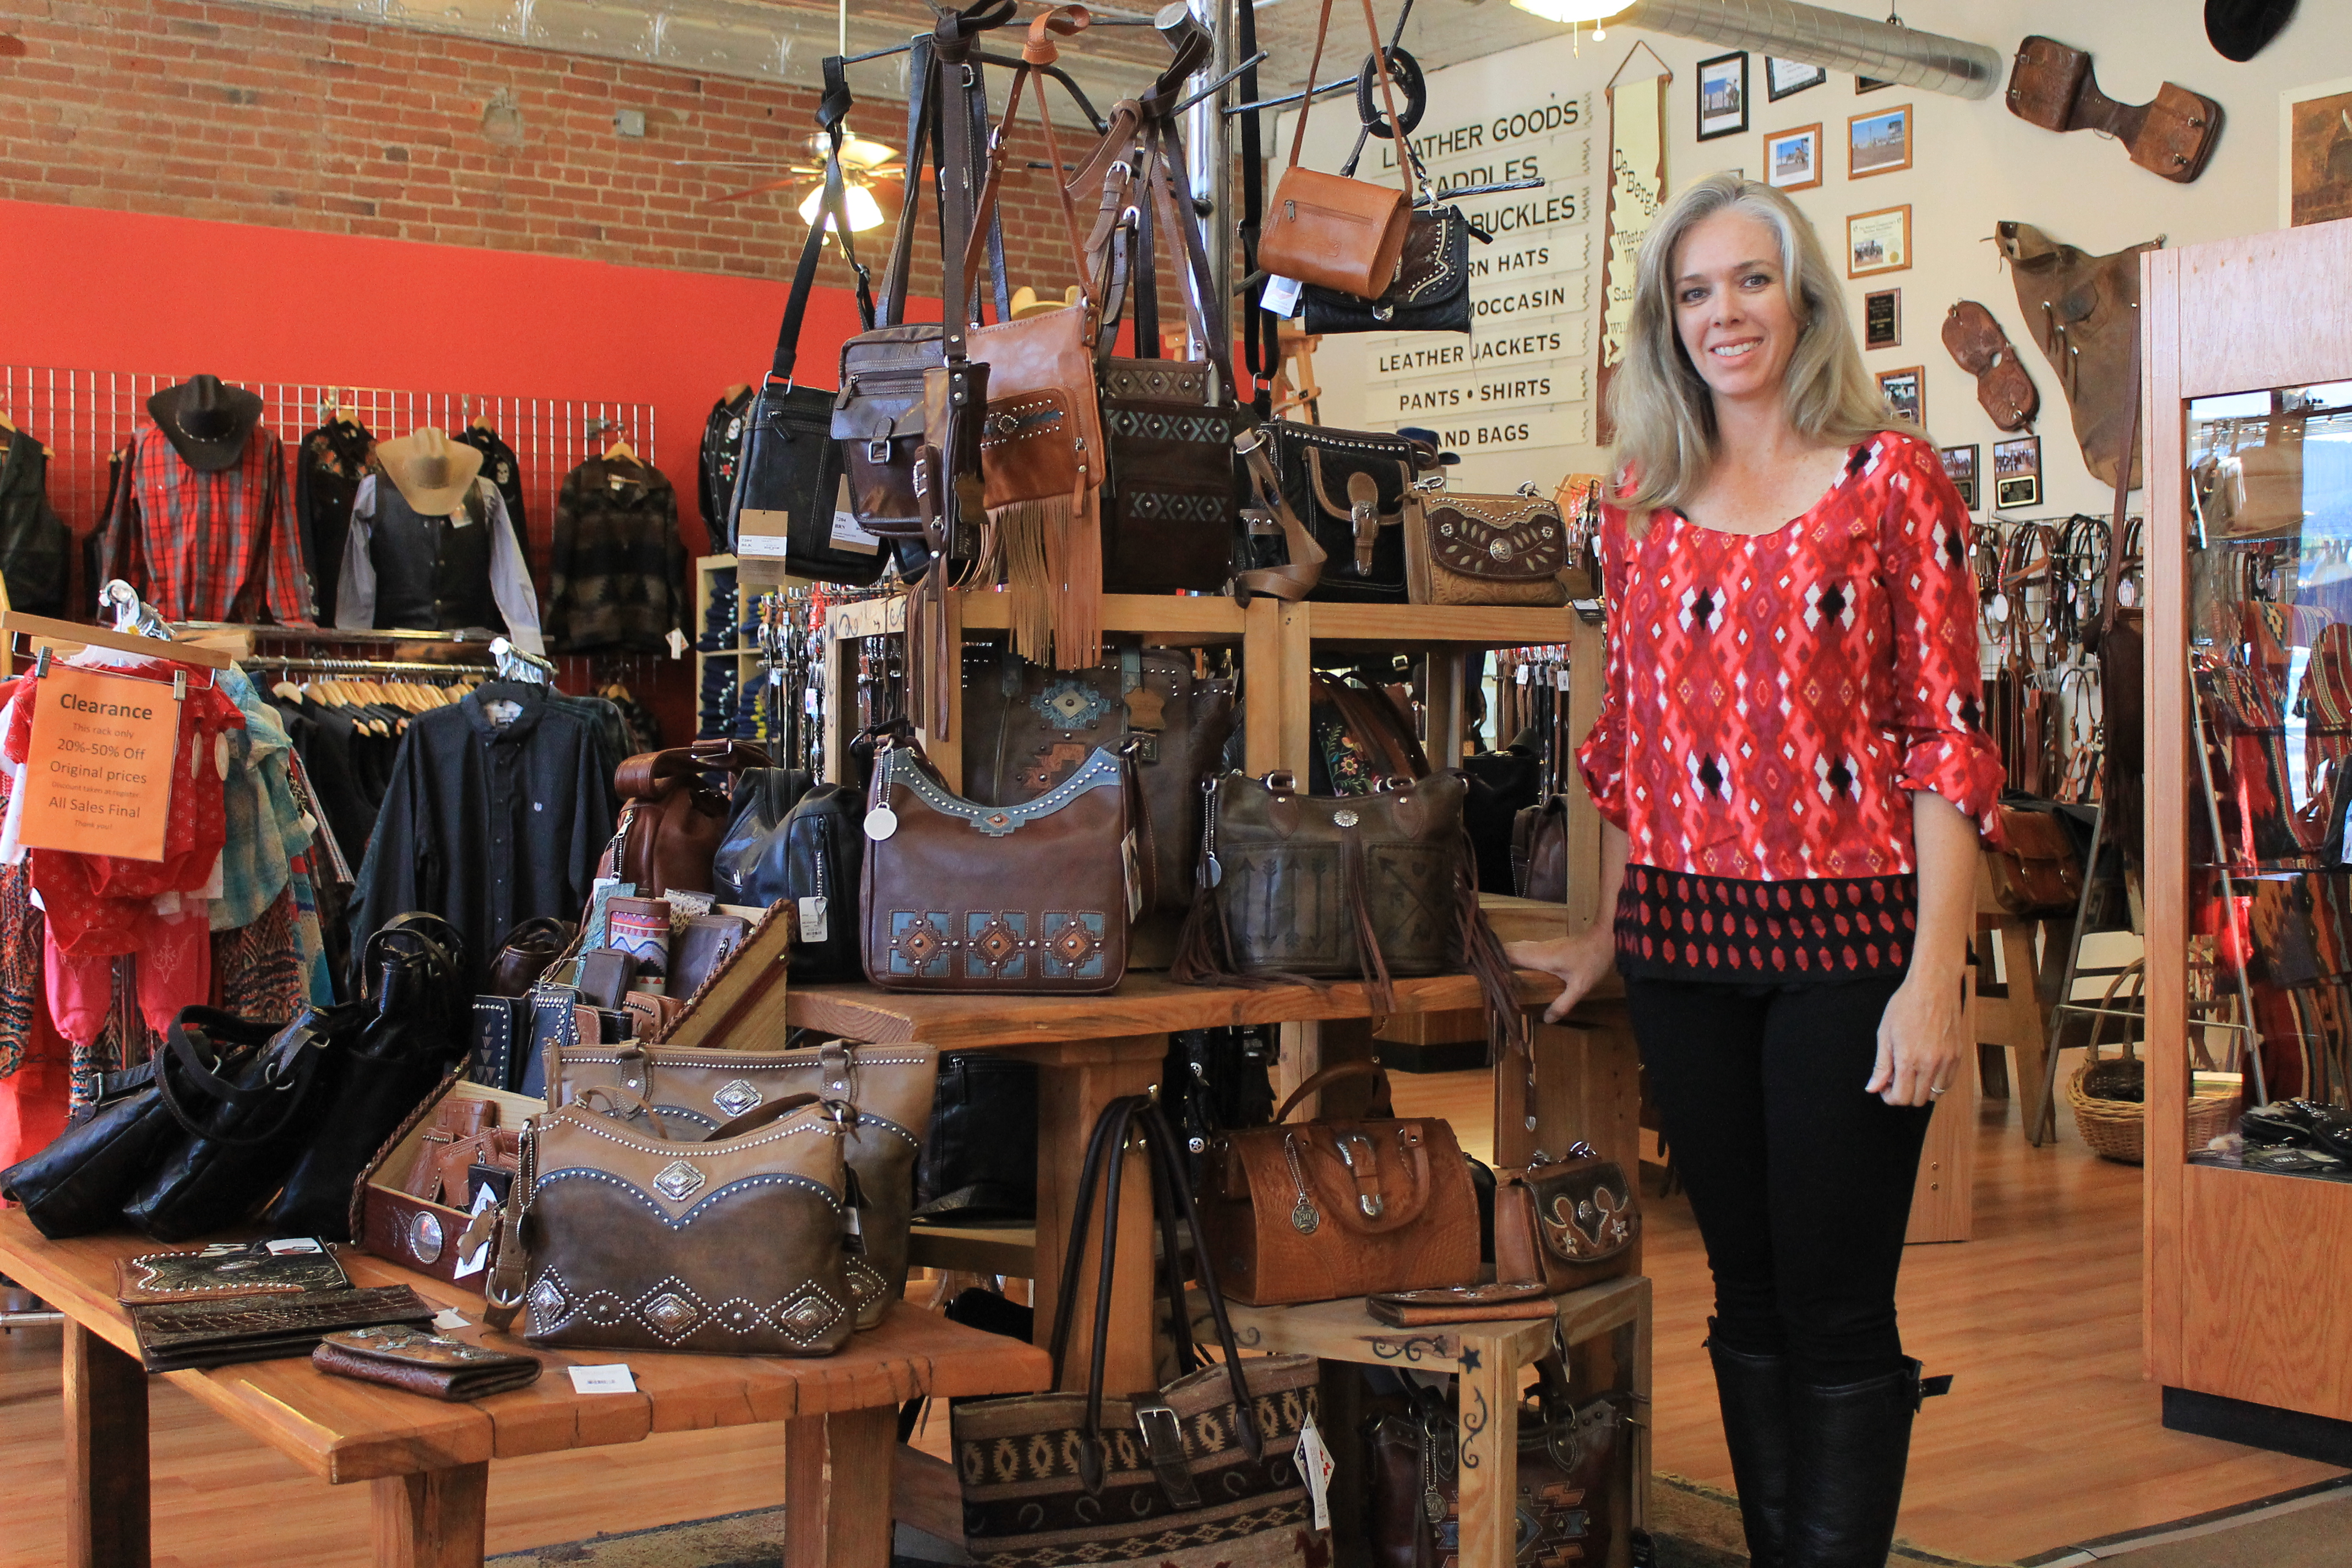 Women in small business: Western Outfitters | Williams-Grand